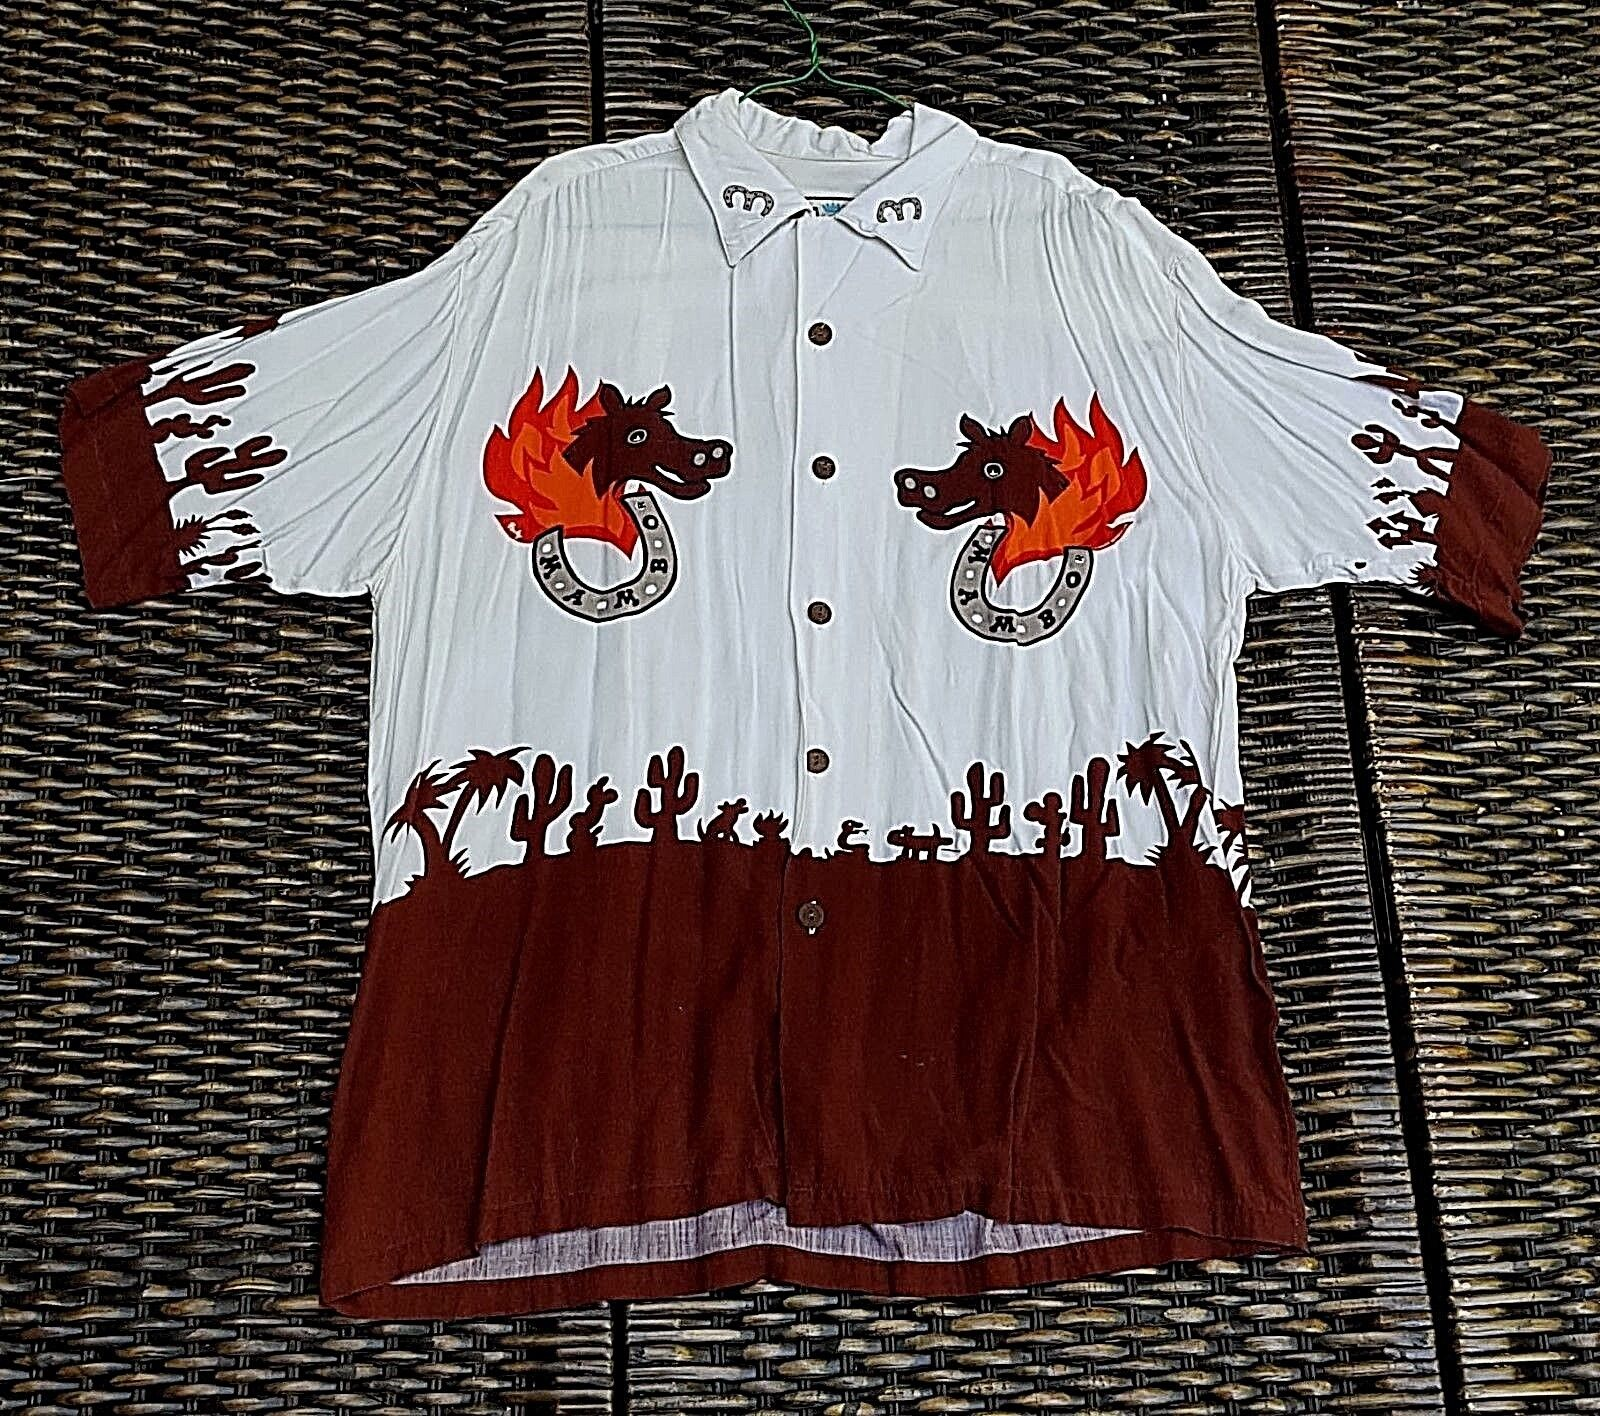 MAMBO LOUD SHIRT LARGE HORSEHEAD FLAMES BLAZE & HORSESHOES ROPING WILD HOGS